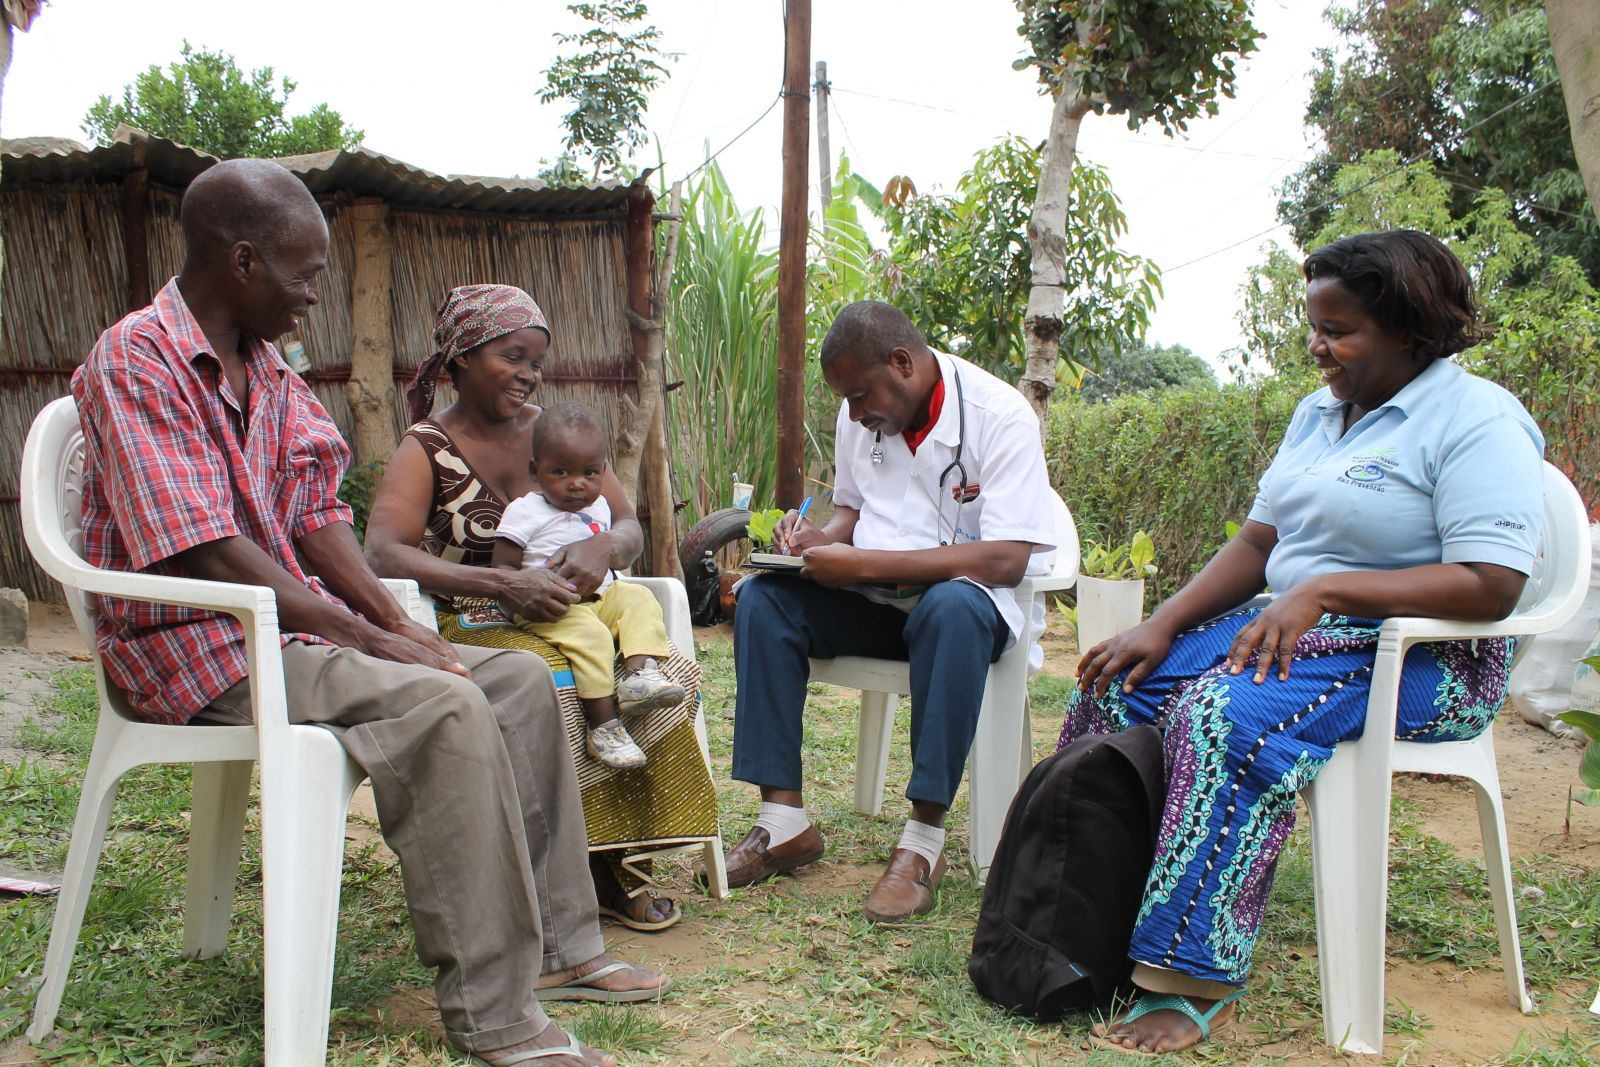 Lay counselors bring HIV testing and counseling services to Mozambicans directly where they live. This government-sponsored program has reached more than 1.2 million people with support from the U.S. Centers for Disease Control and Prevention and Jhpiego.